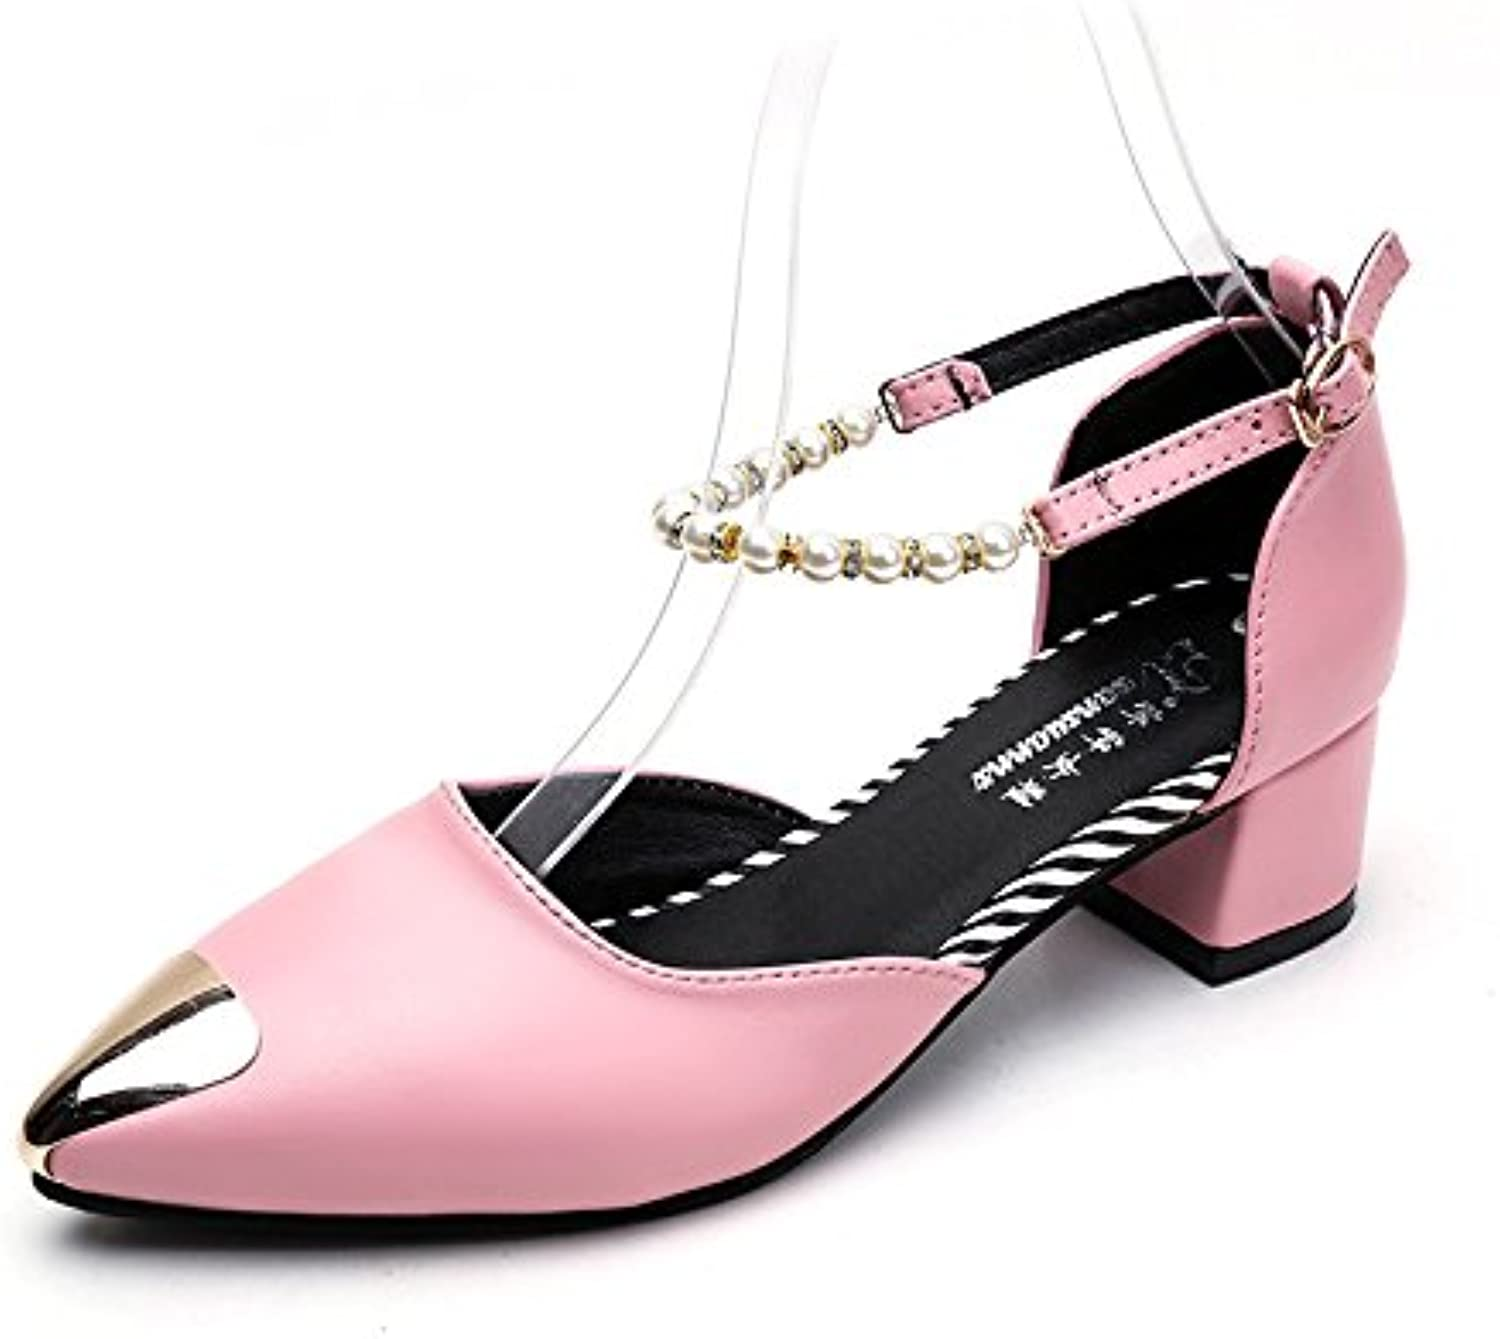 WYMBS Autumn and Winter Gifts Women's shoes Women's Heel Beaded Buckle Single shoes